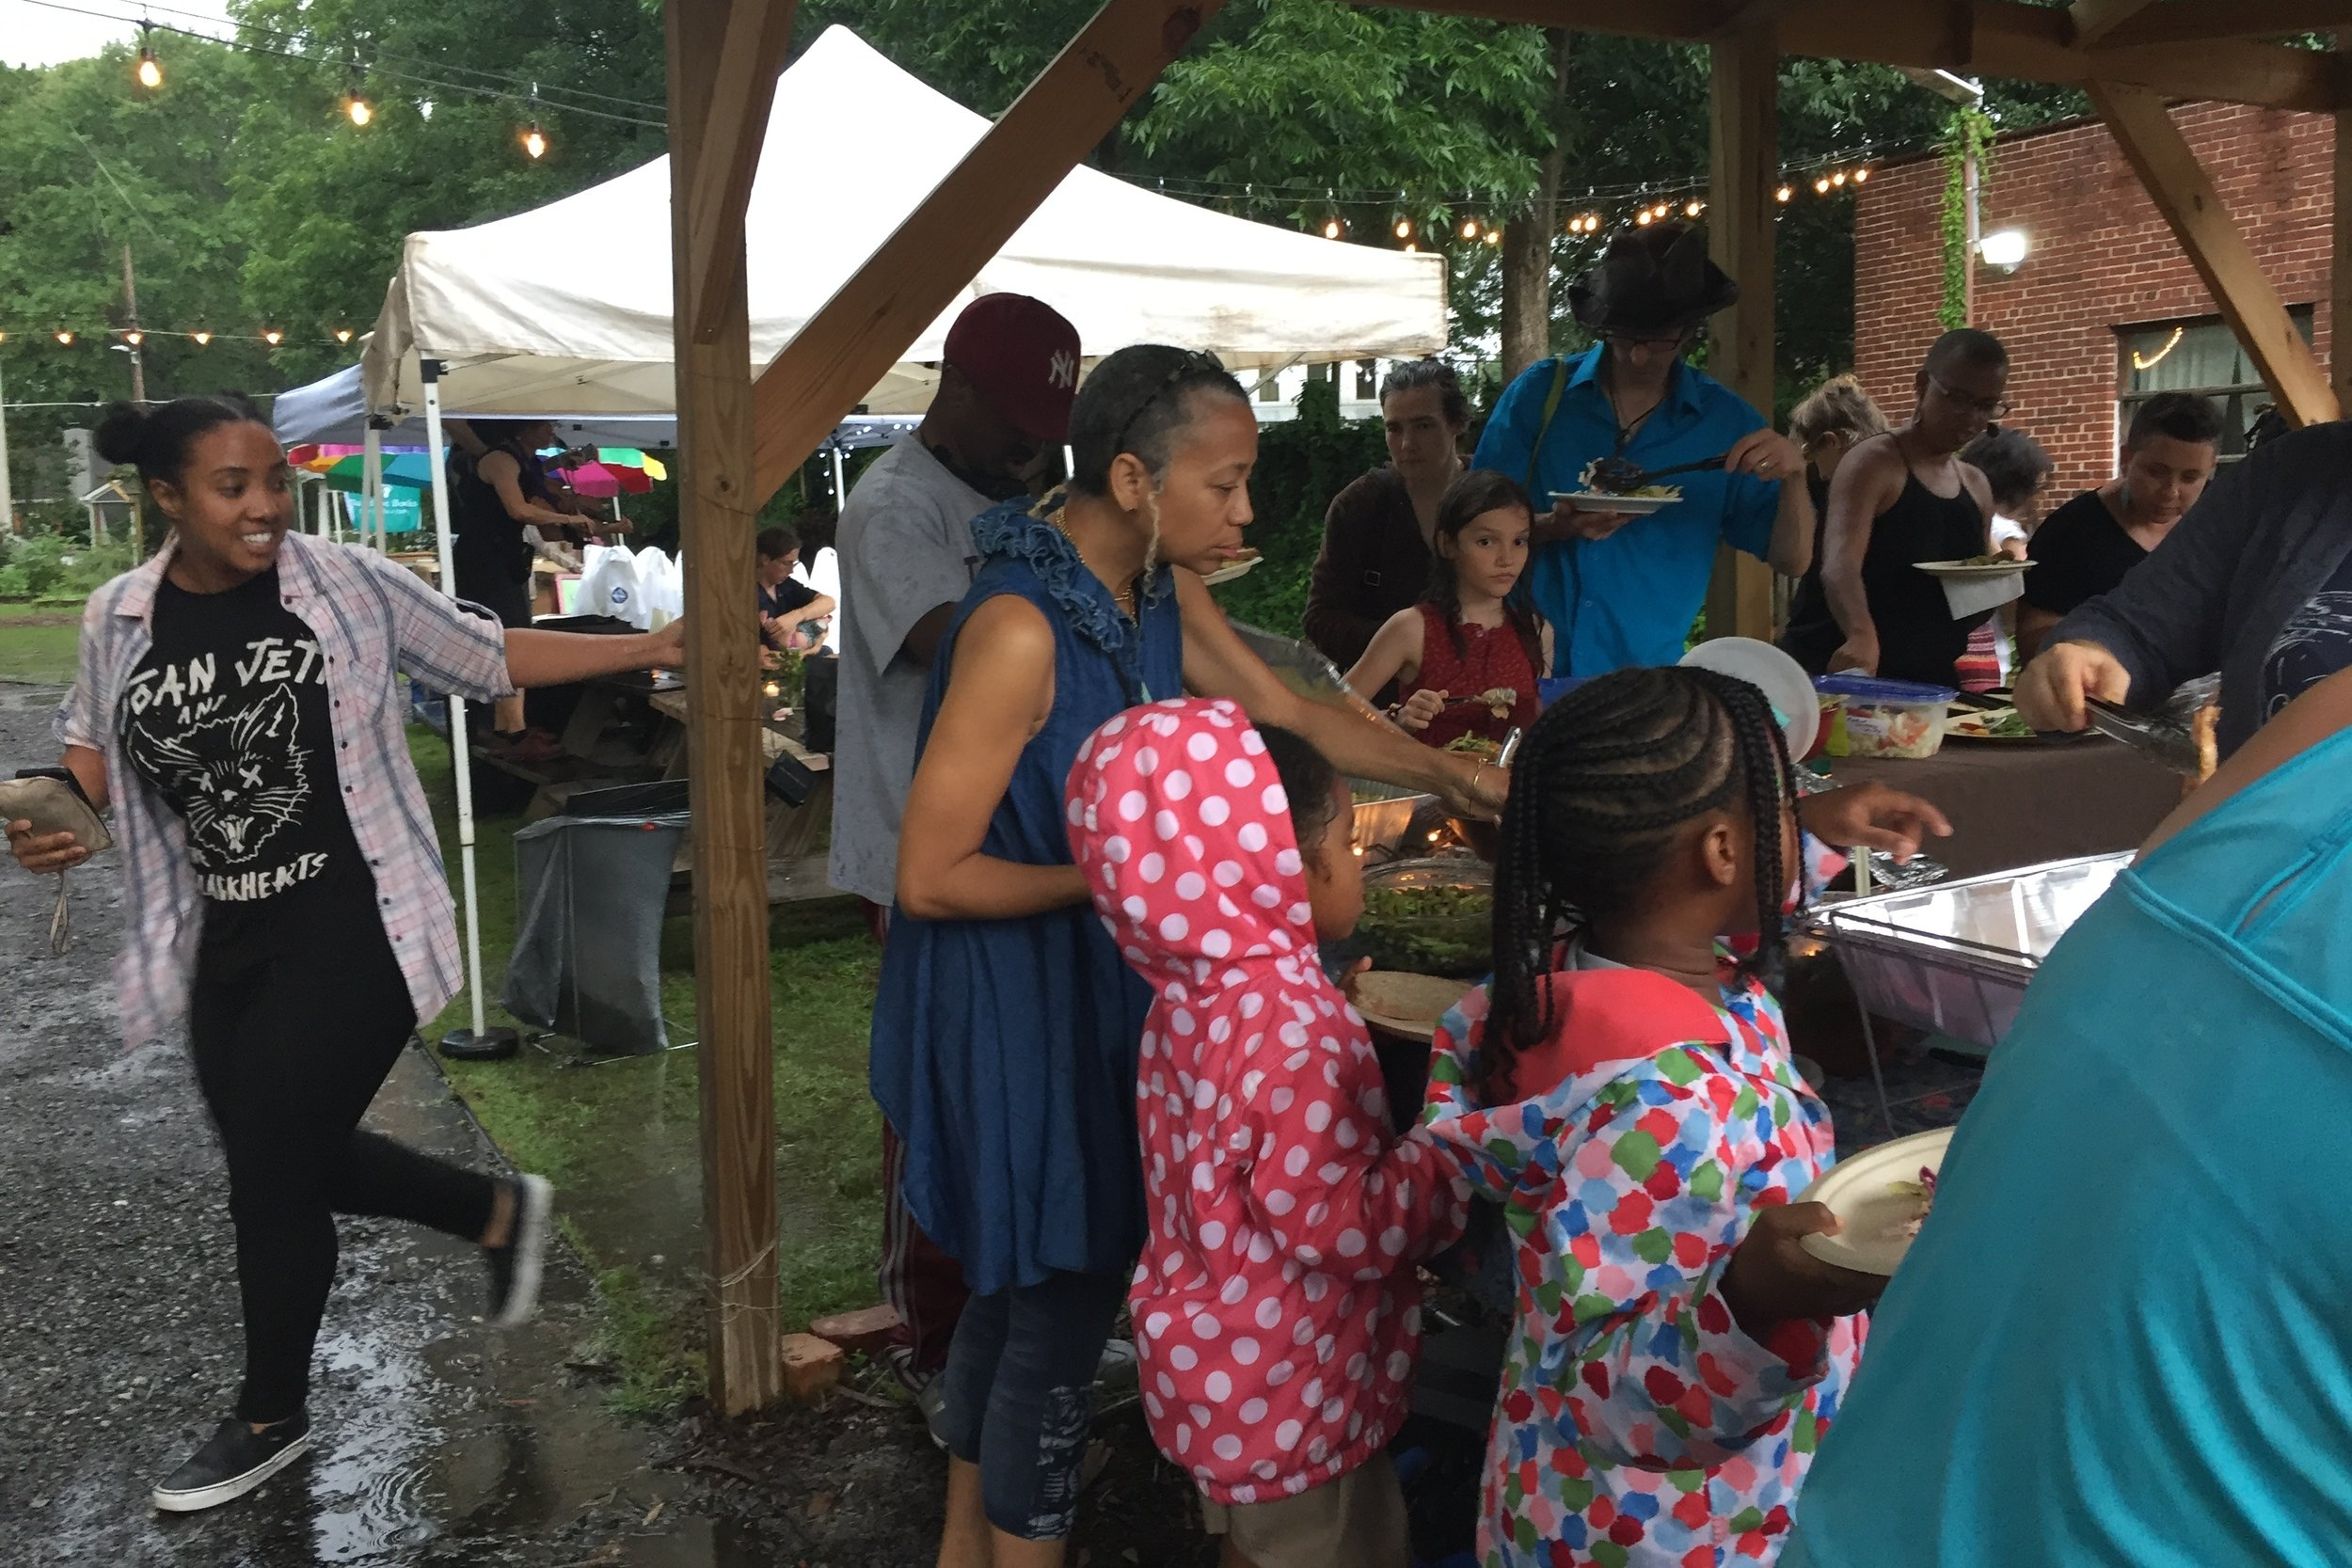 Summer Solstice Potluck + Picnic - Hosted by the East Atlanta Farmers Market (EAVFM)